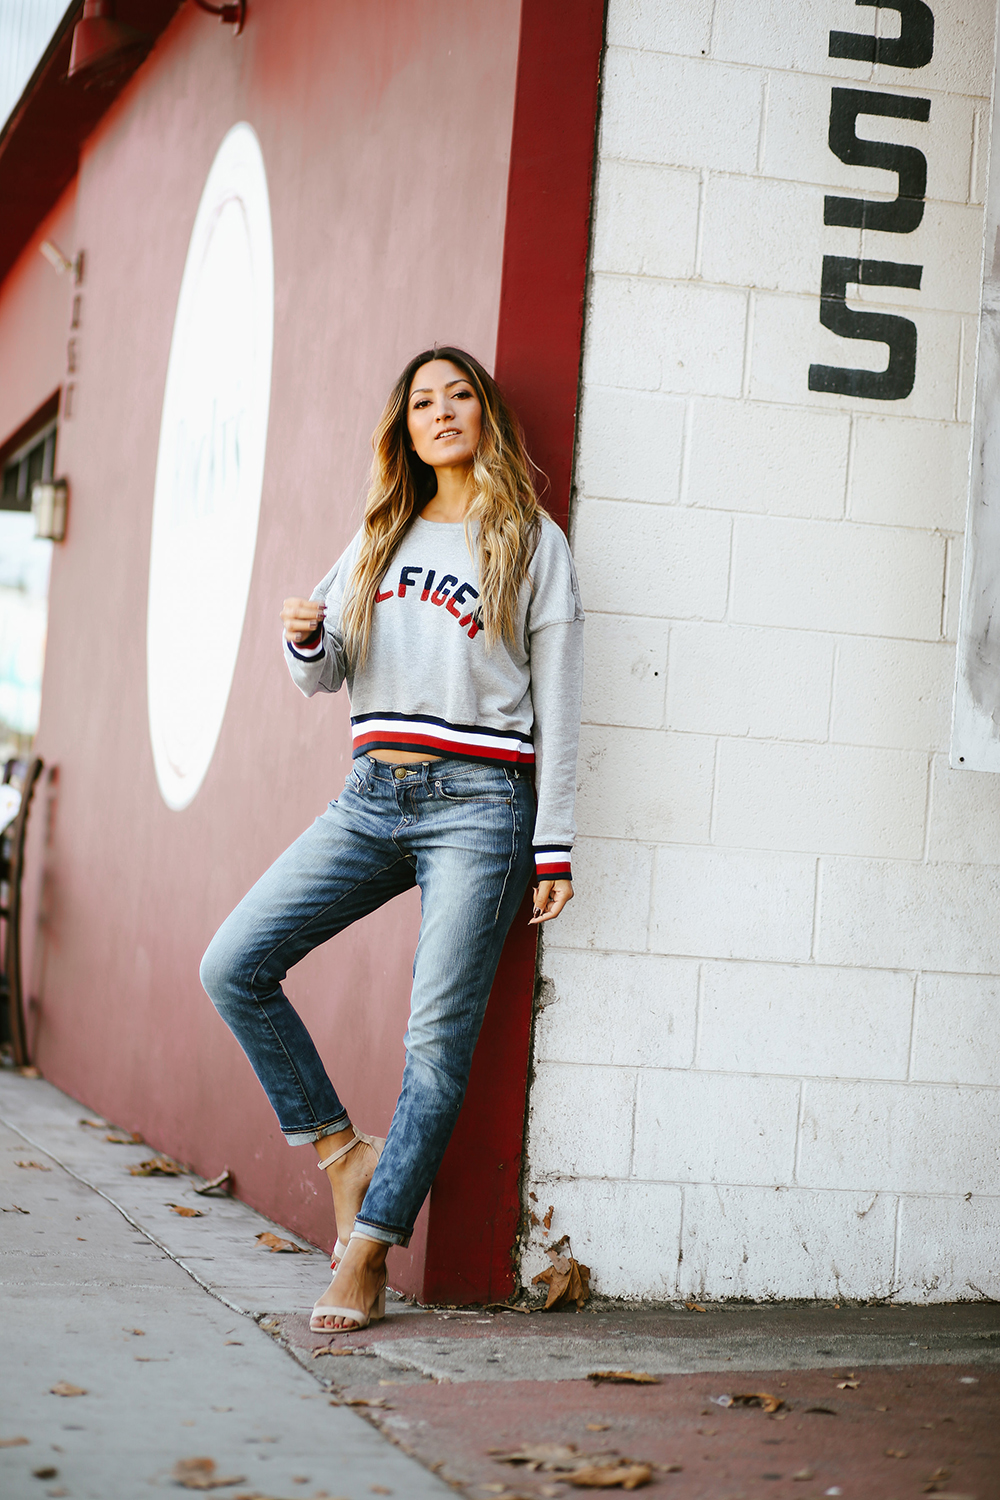 Hilfiger, pacs, tommy hilfiger, casual, melrodstyle, ootd, fashion, style, street style, la blogger, whittier blogger, latina blogger, hispanic blogger, mexican blogger,